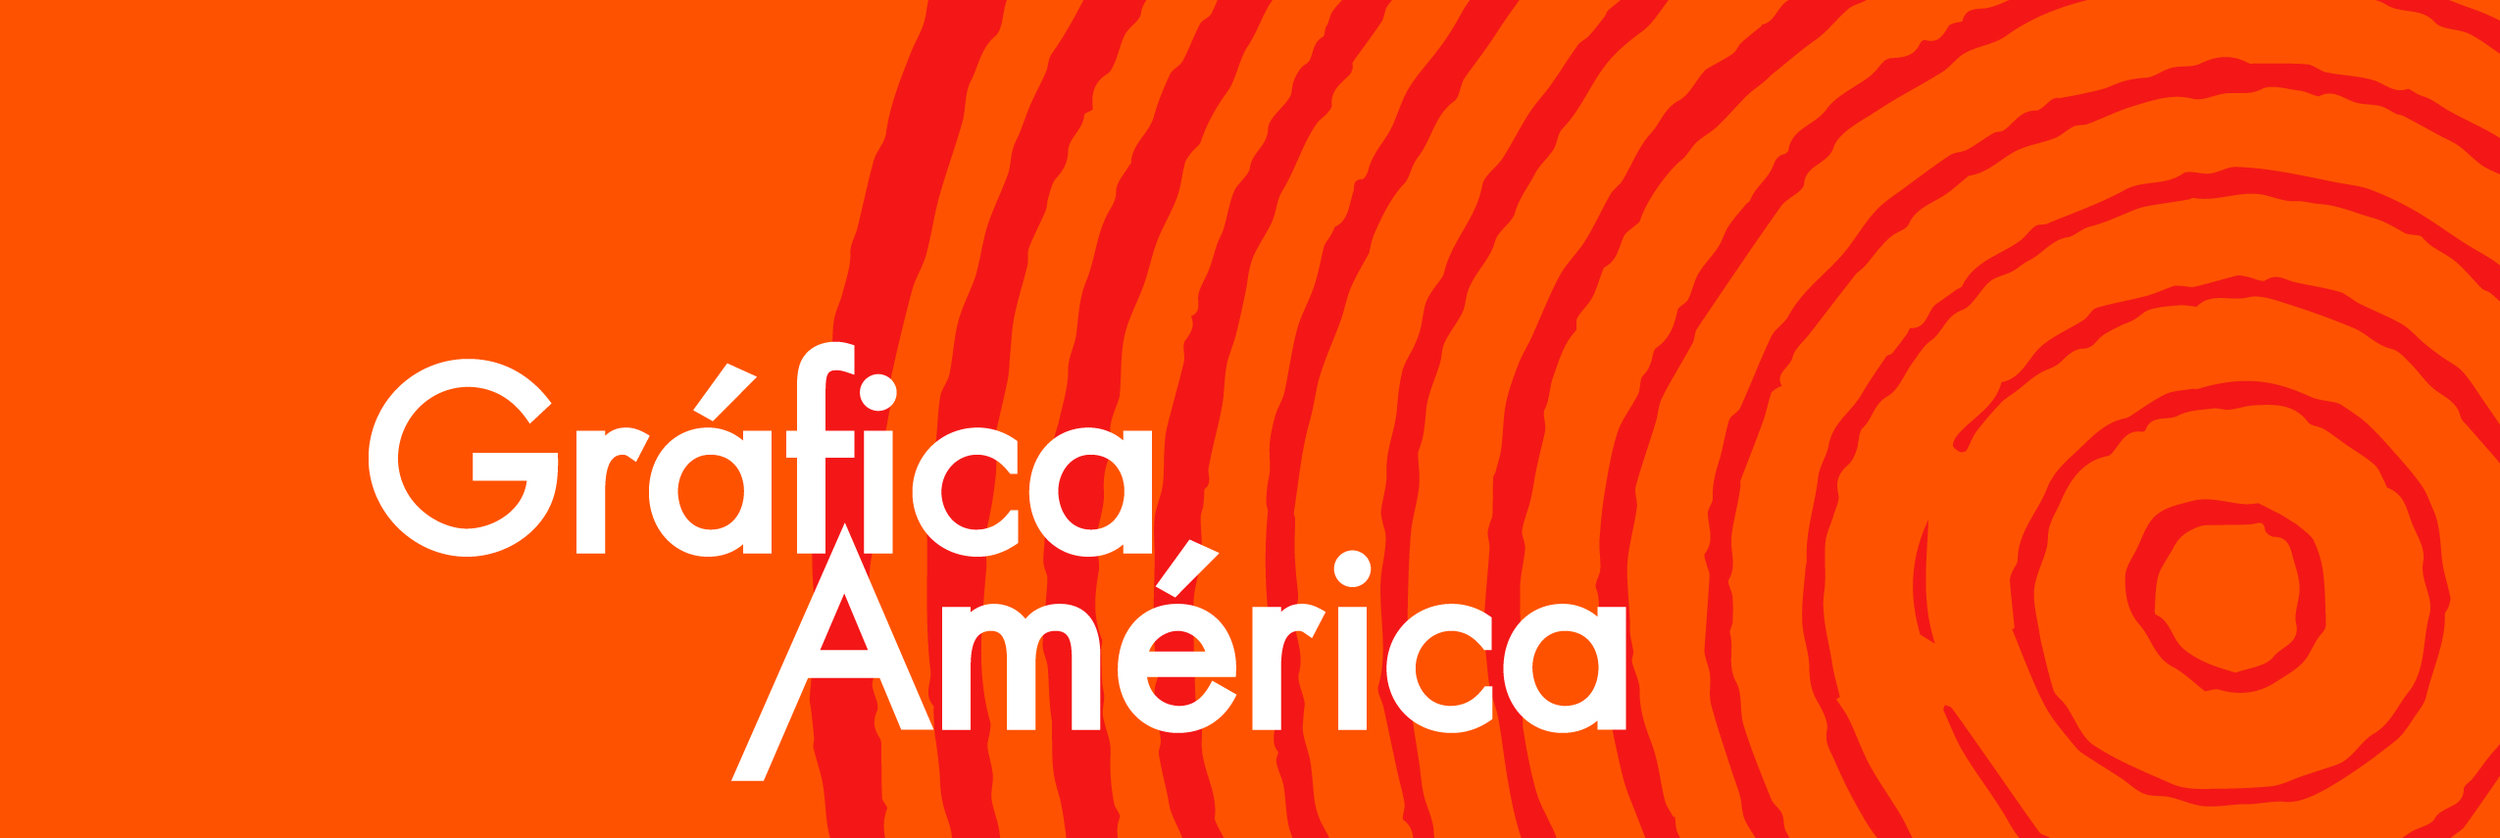 2 Grafica America Website Banner narrow.jpg